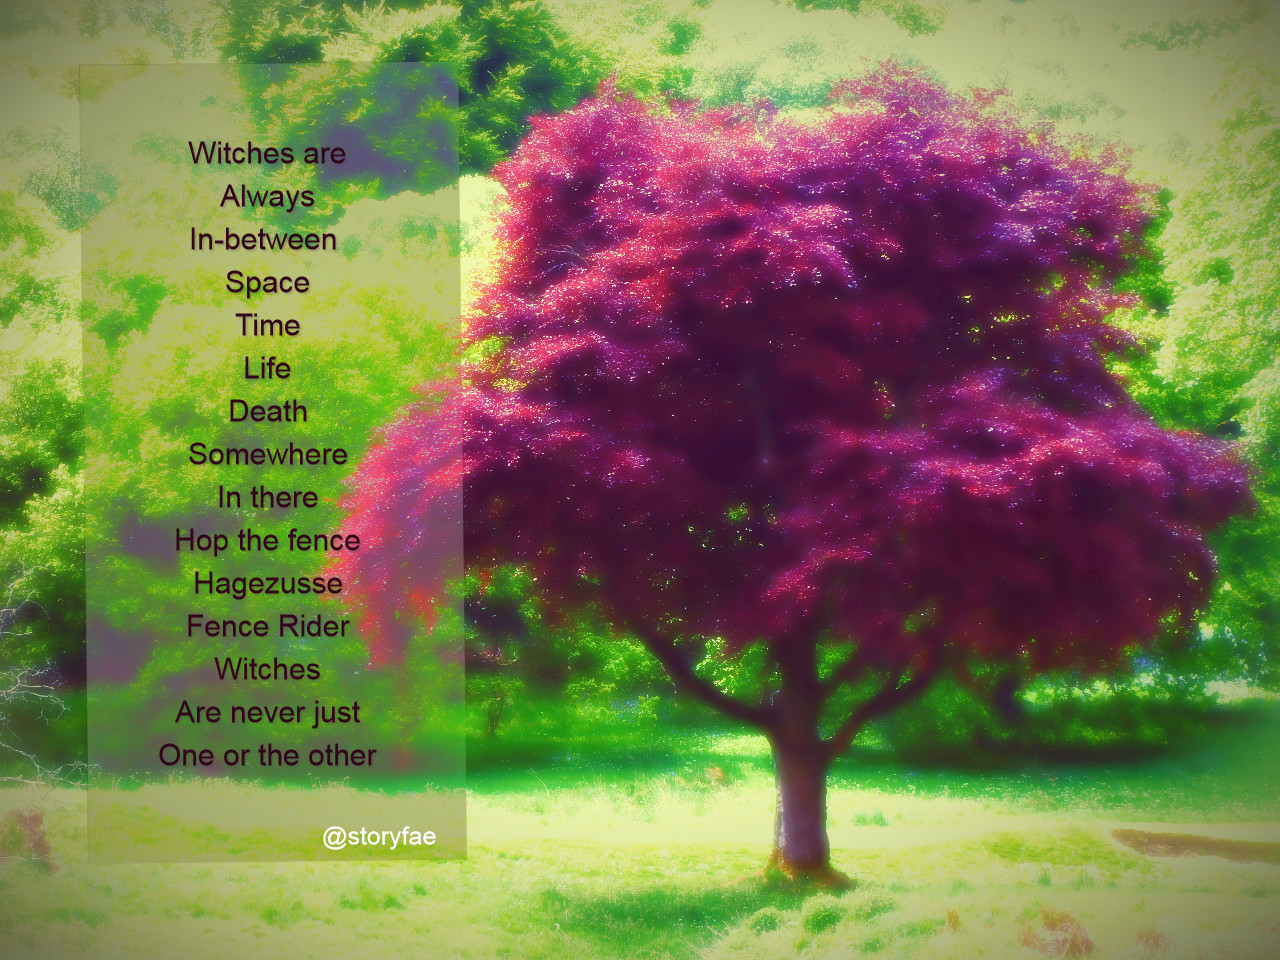 Purple tree in front of green background text overlay reads: Witches are Always In-between  Space Time Life Death Somewhere In there Hop the fence Hagezusse Fence Rider Witches Are never just One or the other